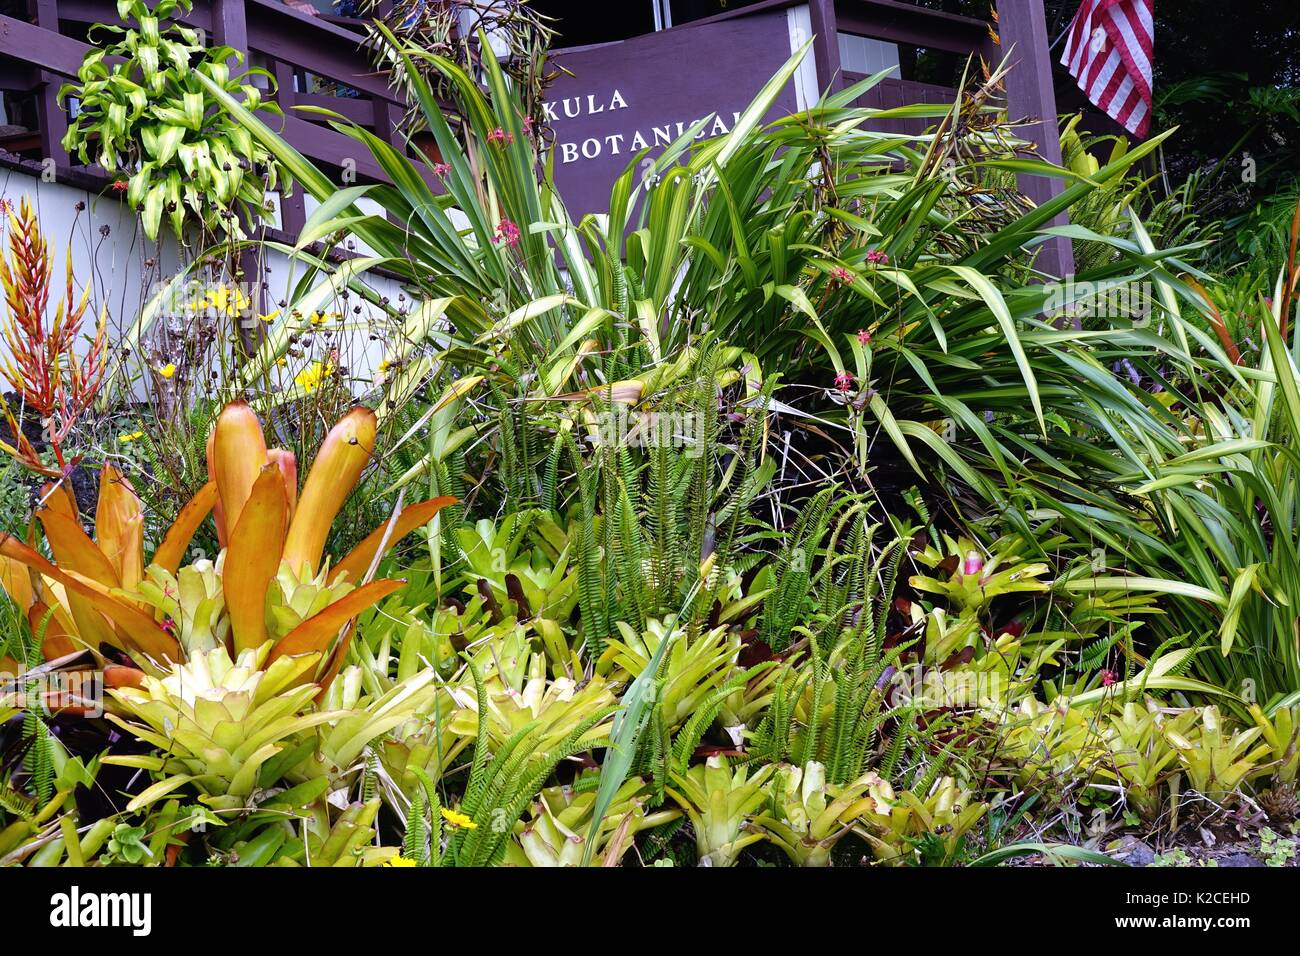 Colorful Plants Adorn The Entrance Building In Kula Botanical Garden, Kula,  Maui, Hawaii